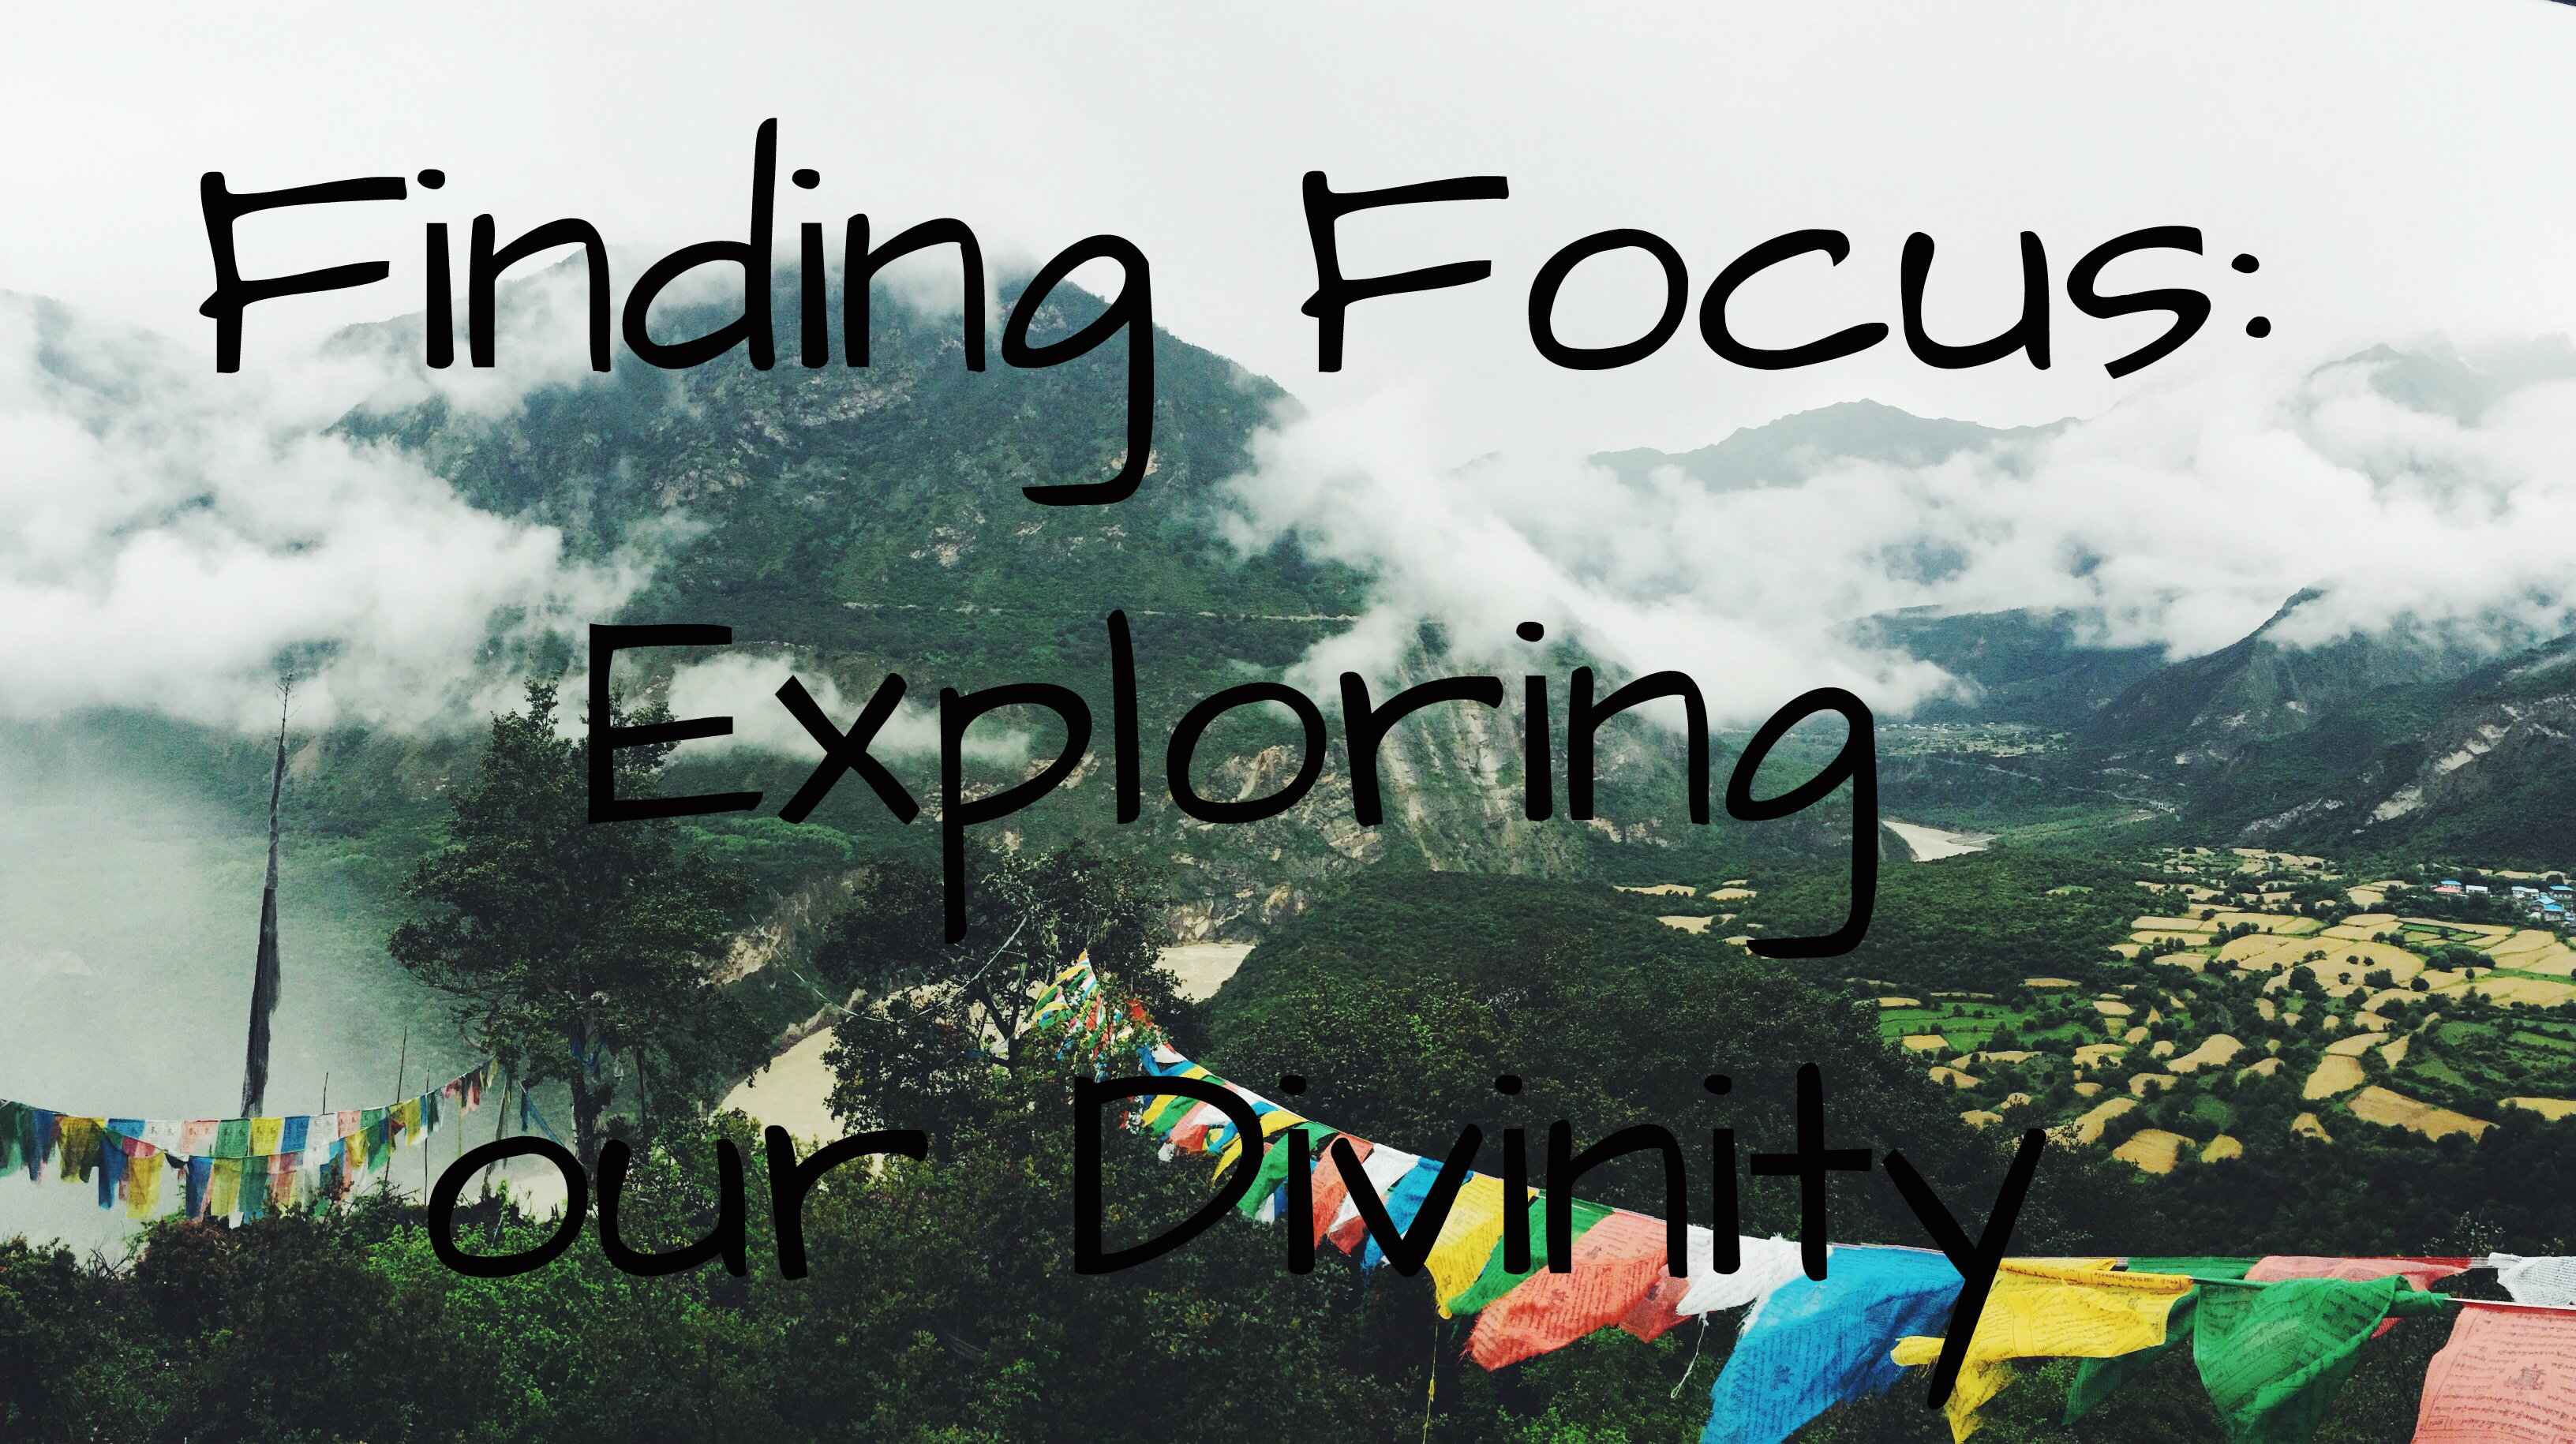 Finding Focus: Exploring Our Divinity black text over picture of prayer flags on mountains china